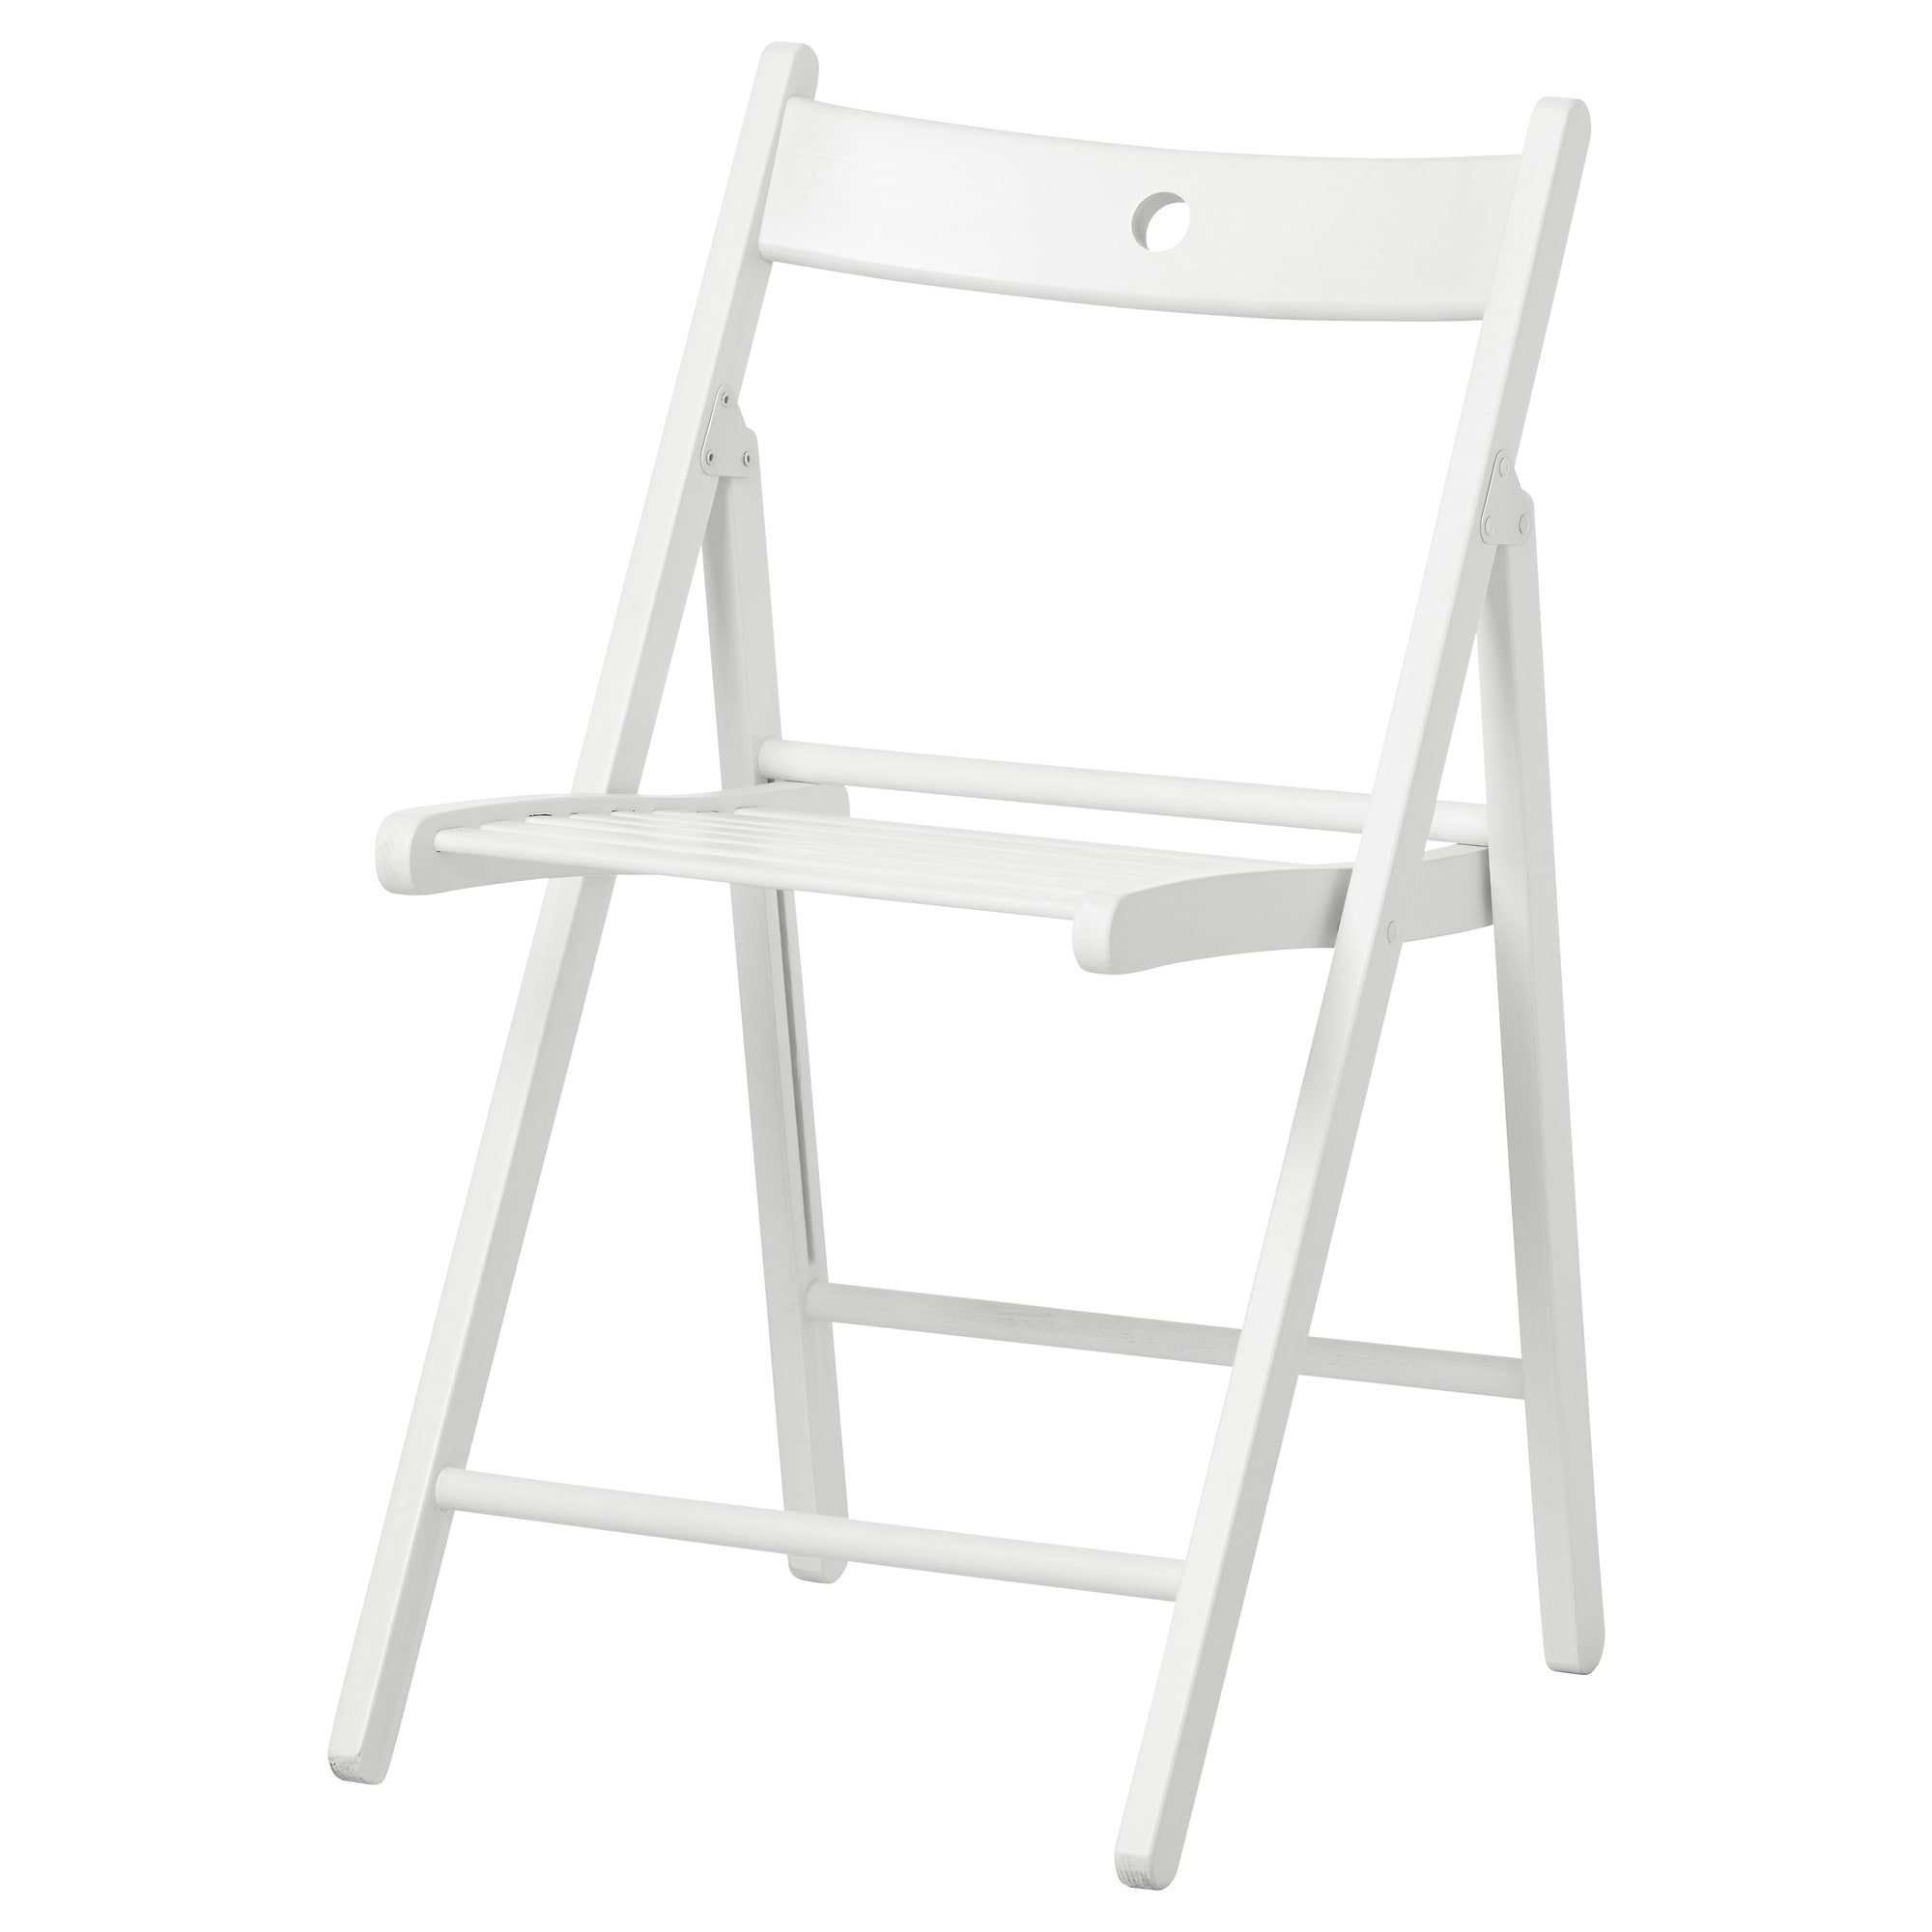 Inter IKEA Systems B.V. 1999 - 2018 | Privacy Policy | Responsible Disclosure.  sc 1 st  Ikea & TERJE Folding chair - IKEA